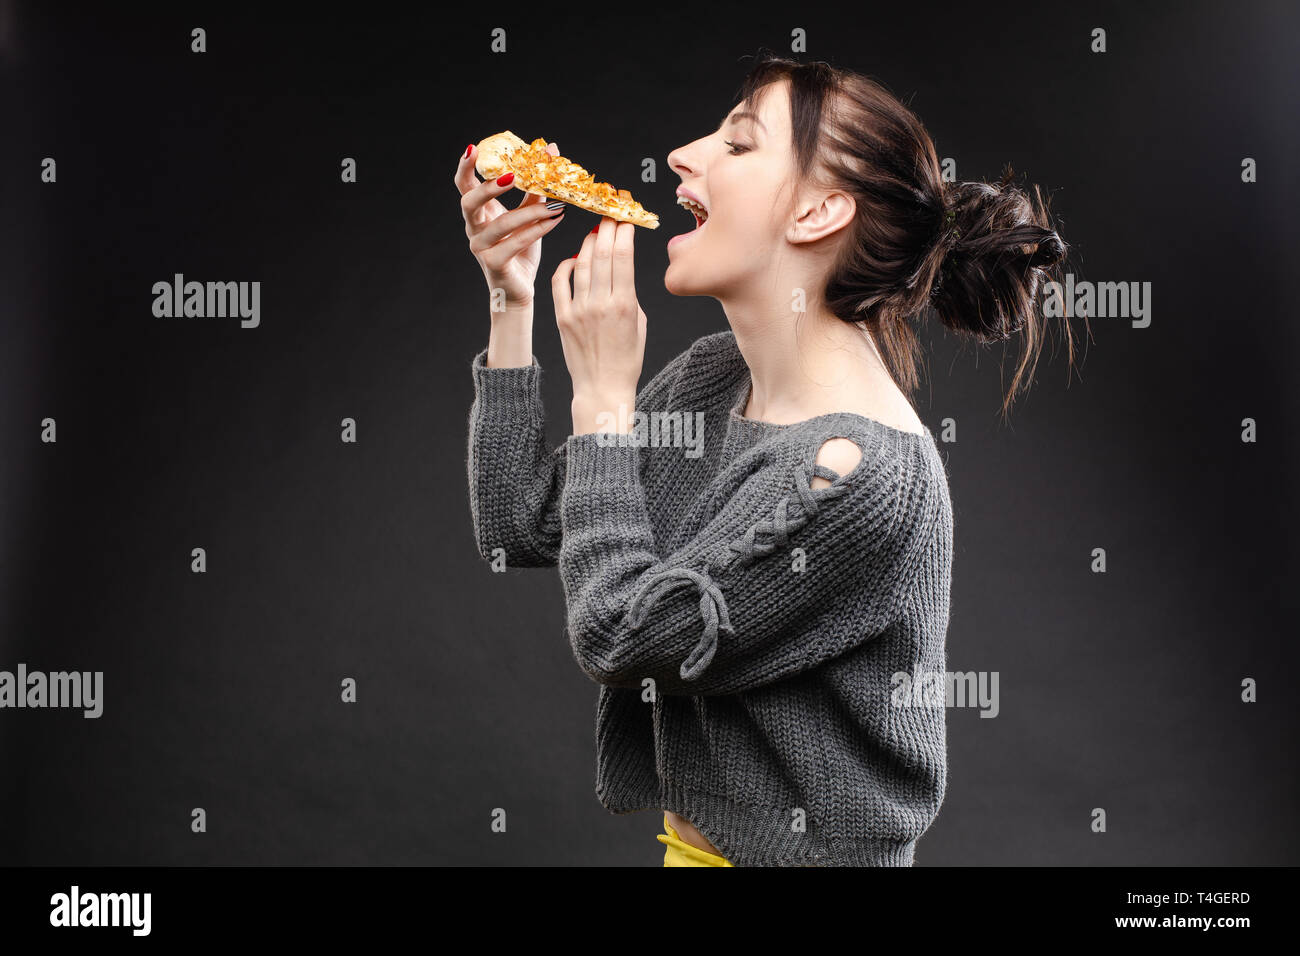 Hungry girl with opened mouth eating pizza - Stock Image